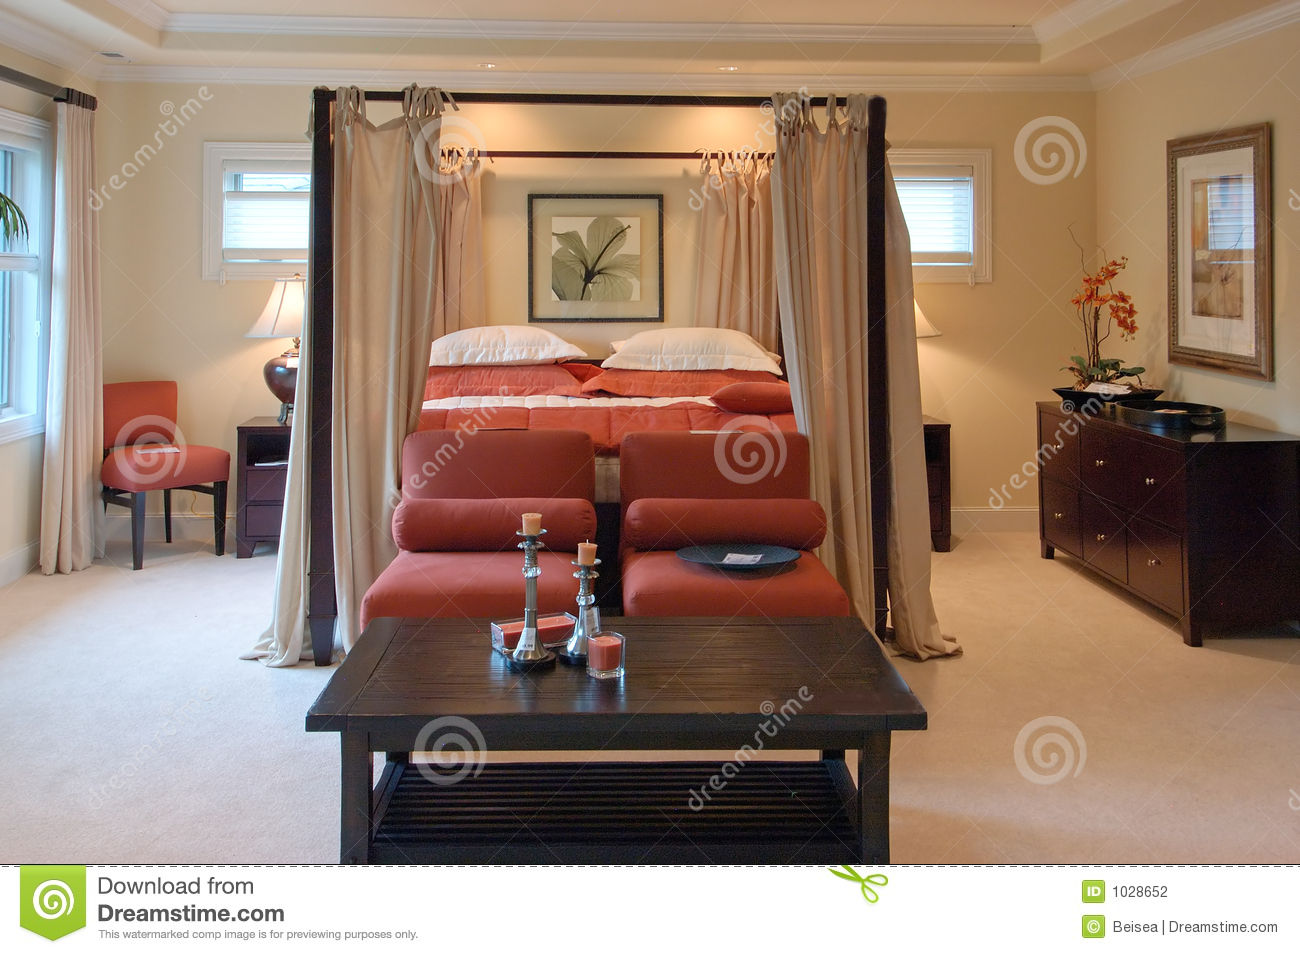 Creativeart furthermore Small Space Living Pennsport South Philadelphia Home Staging By Sunflower Creations as well Peter Marino Rev ed Luxury Mansion On The Upper East Side additionally Project 23 7 also Dab520b818462114. on master bedroom interior design